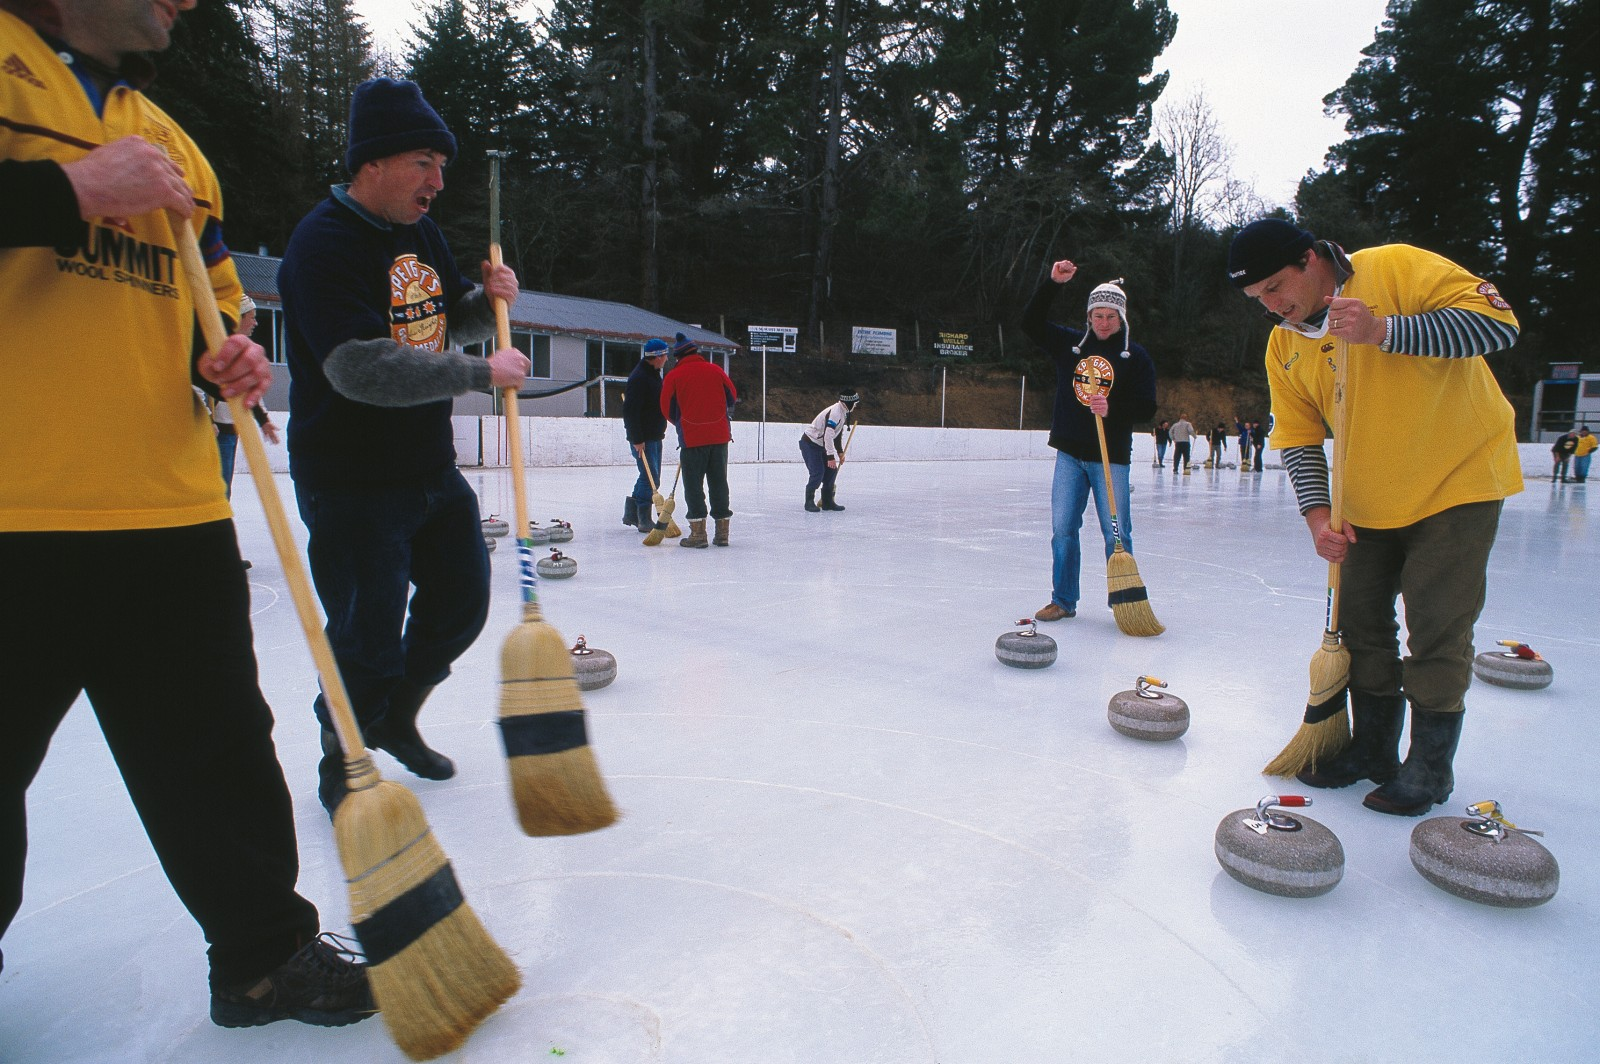 A pair of stones and a broom are the only items of equipment needed by curlers, who flock to the country's curling capital, Naseby, in winter. Most matches are held on artificial ice in Naseby's outdoor rink, but the town also has natural ice dams.